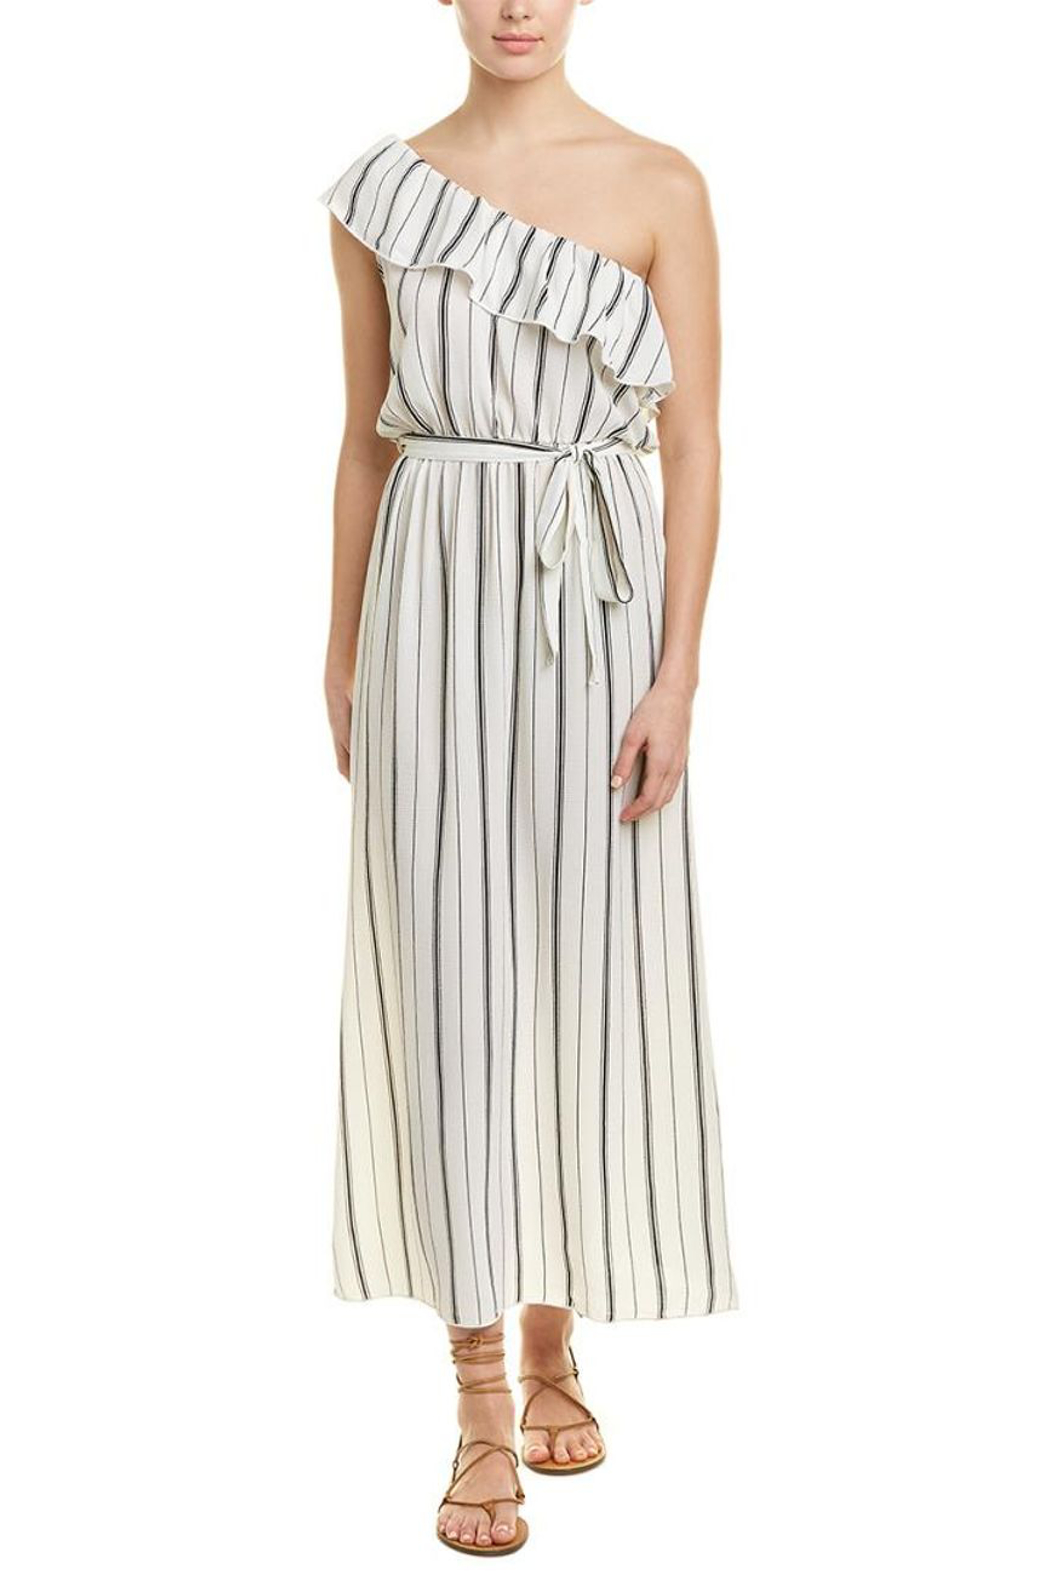 SAGE THE LABEL Full Moon Maxi Dress - Side Cropped Image